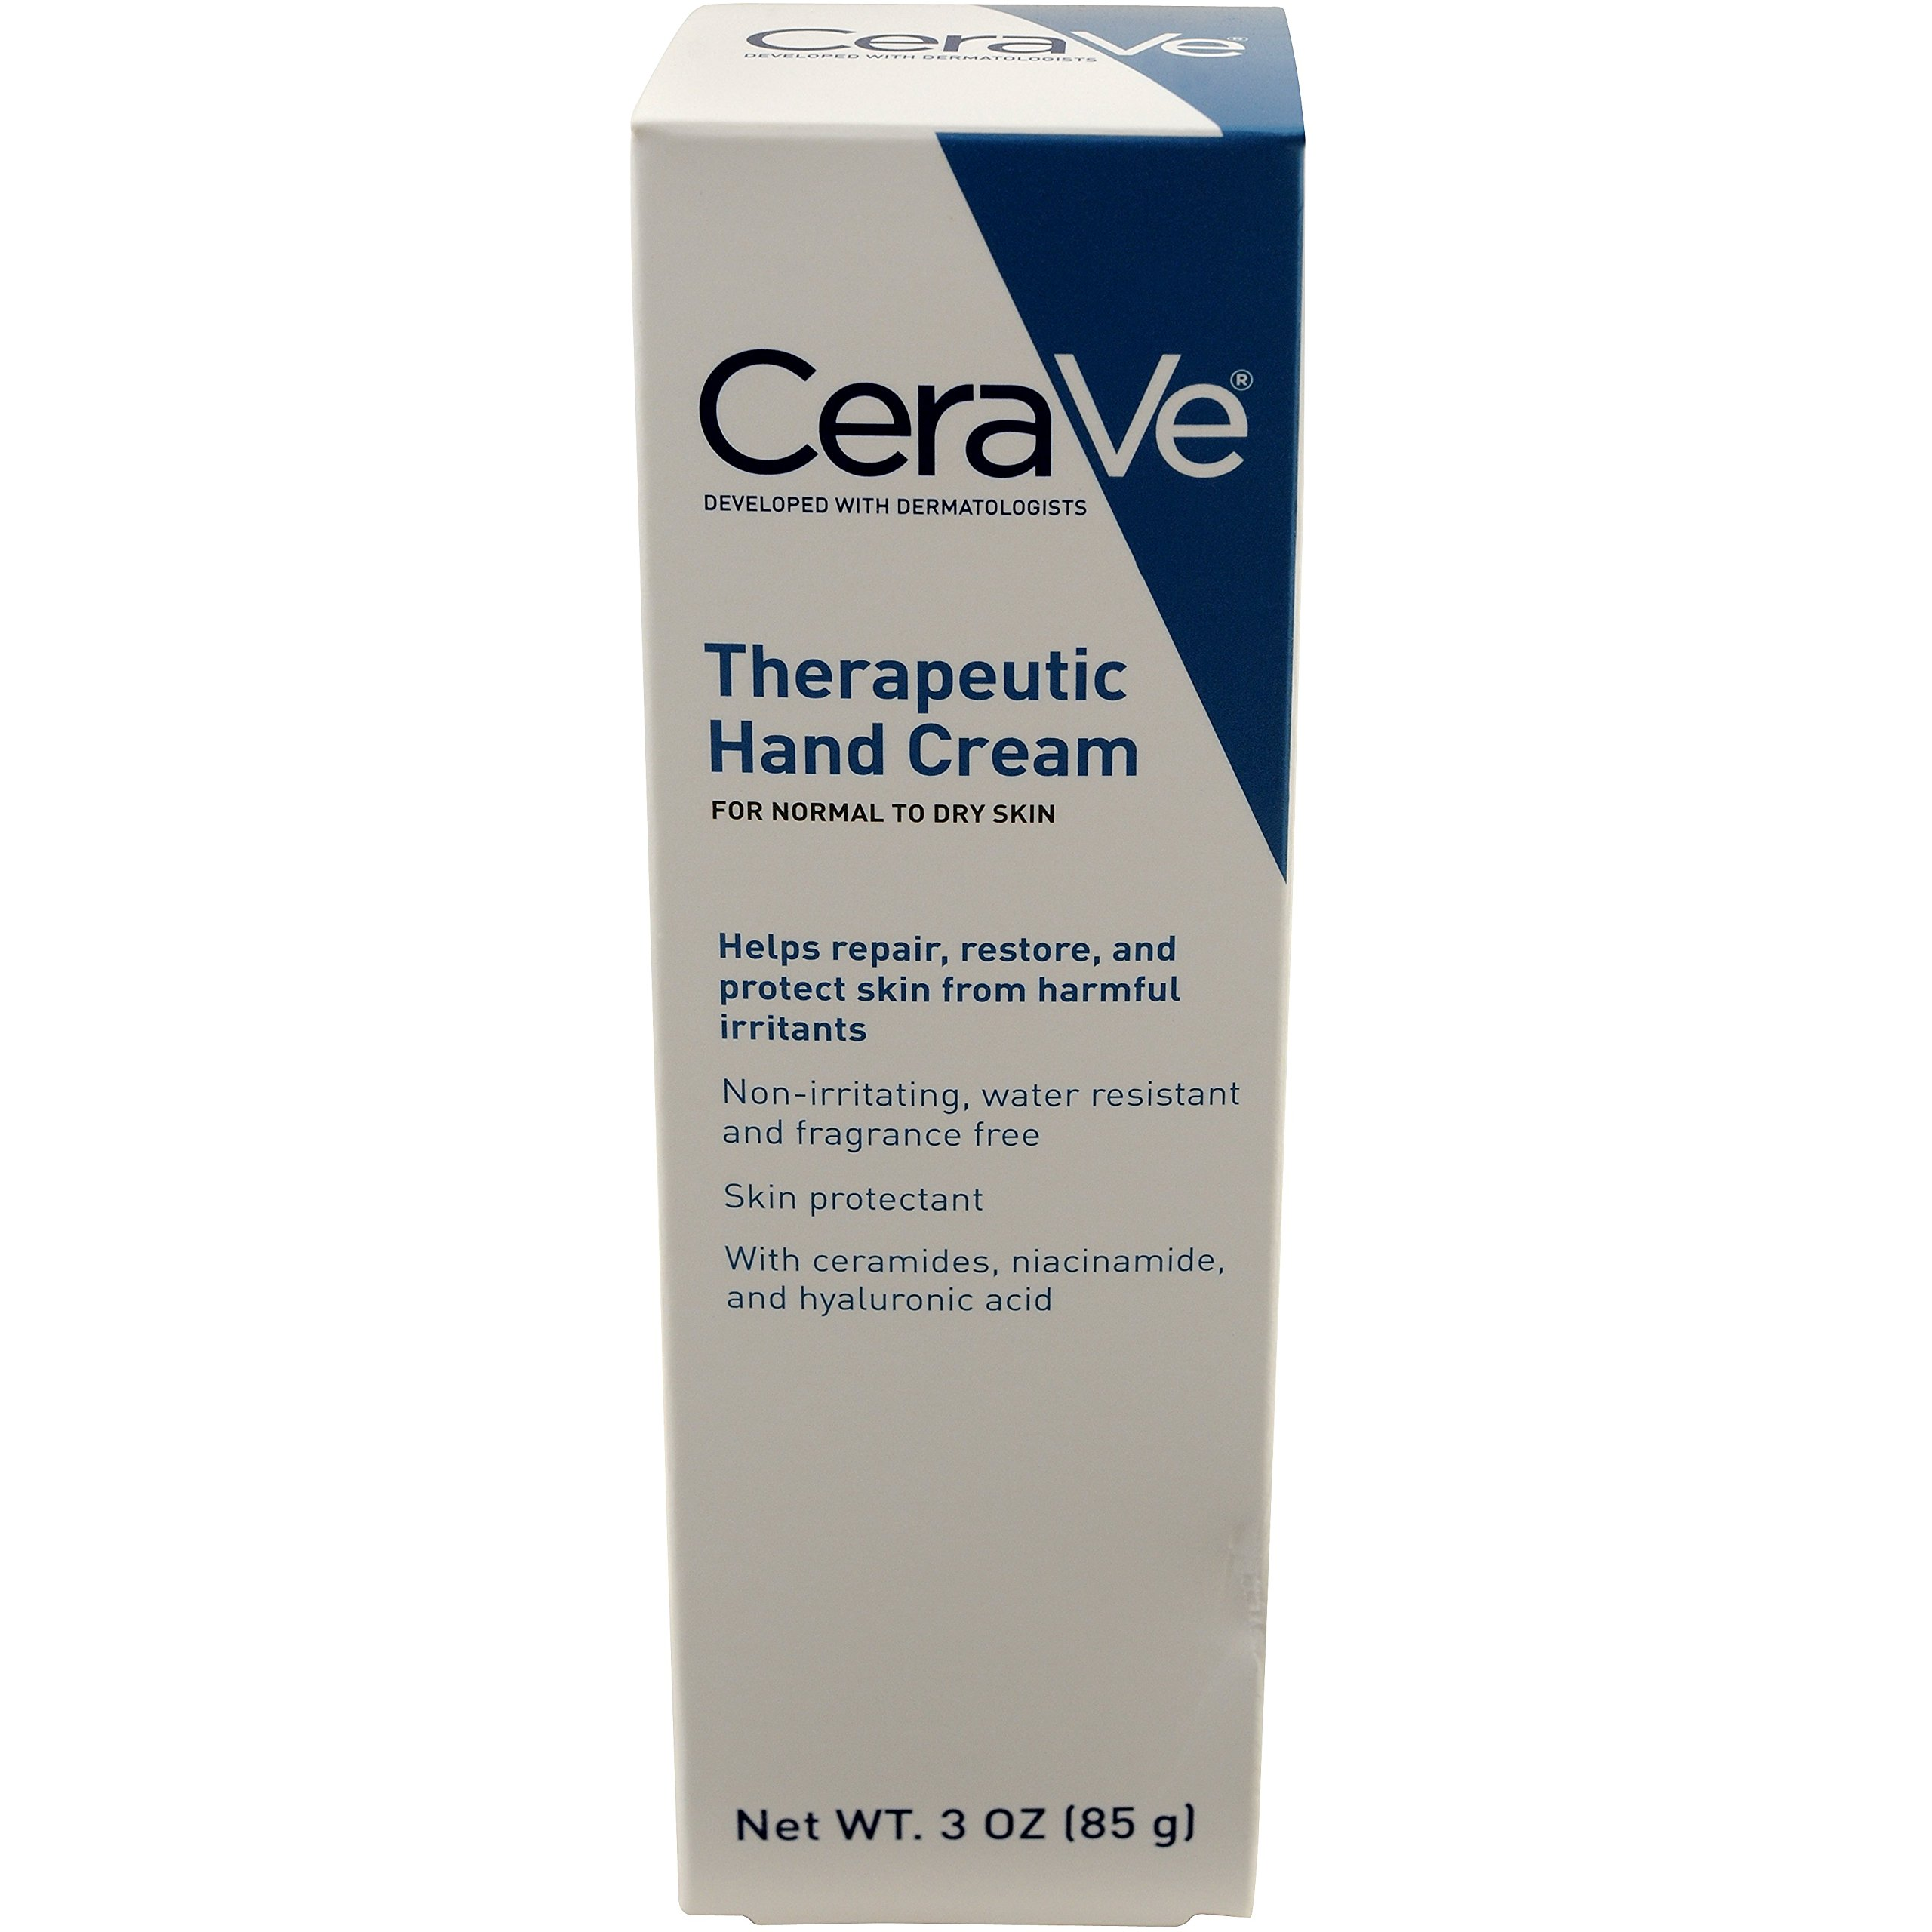 CeraVe Therapeutic Hand Cream 3 oz with Hyaluronic Acid and Ceramides for Skin Protection, Restoration and Repair